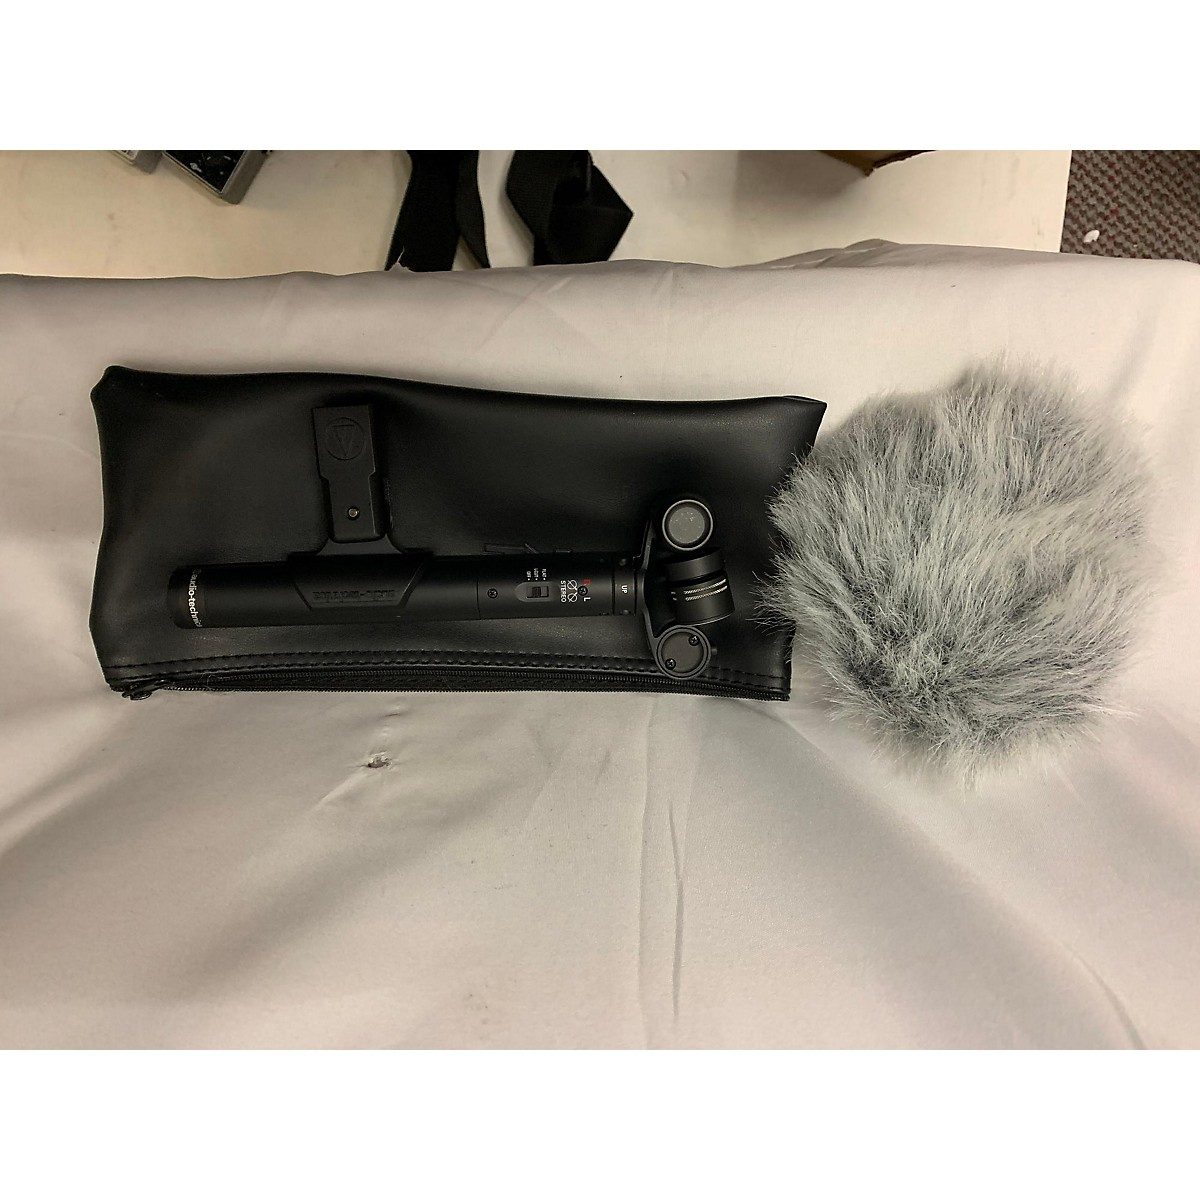 Audio-Technica 2010s AT2022 X/Y Condenser Microphone